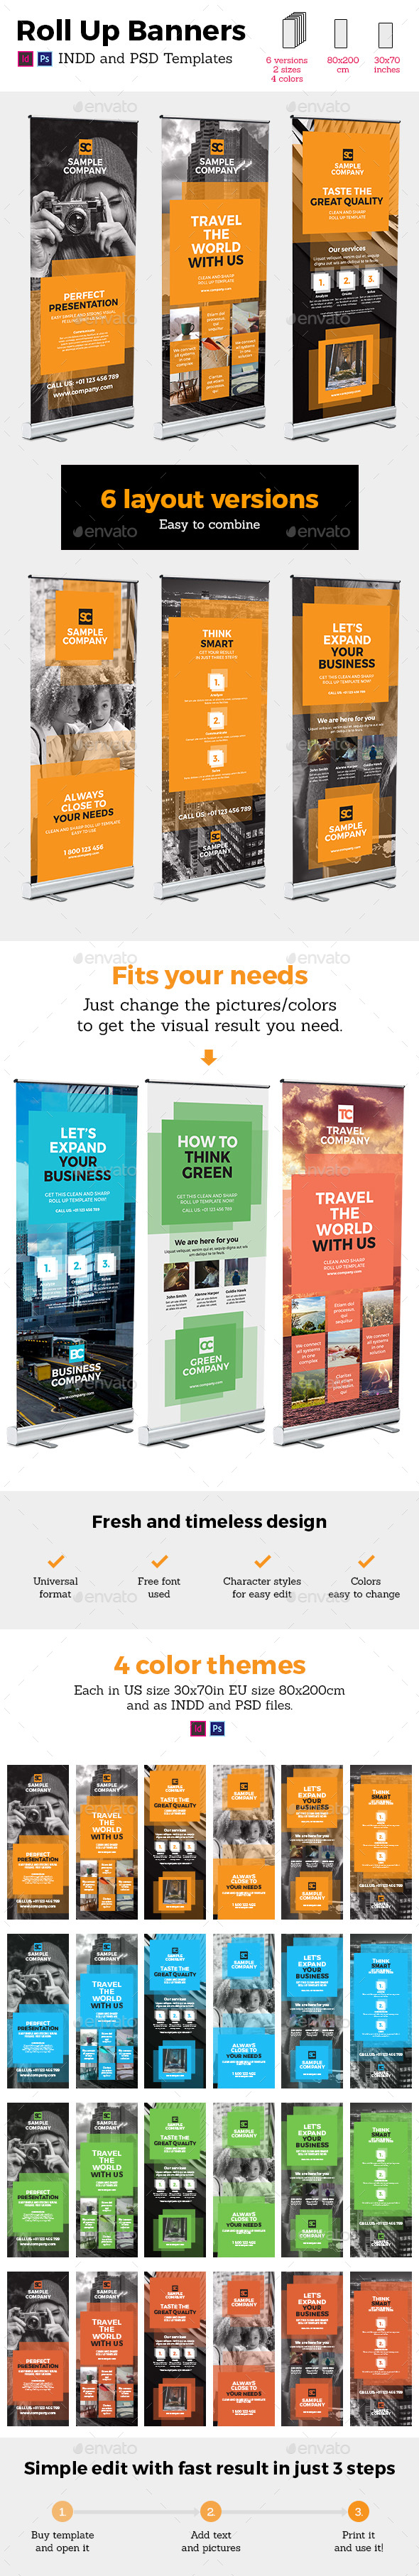 Square Style Rollup Stand Banner Display 24x InDesign and Photoshop Template - Signage Print Templates